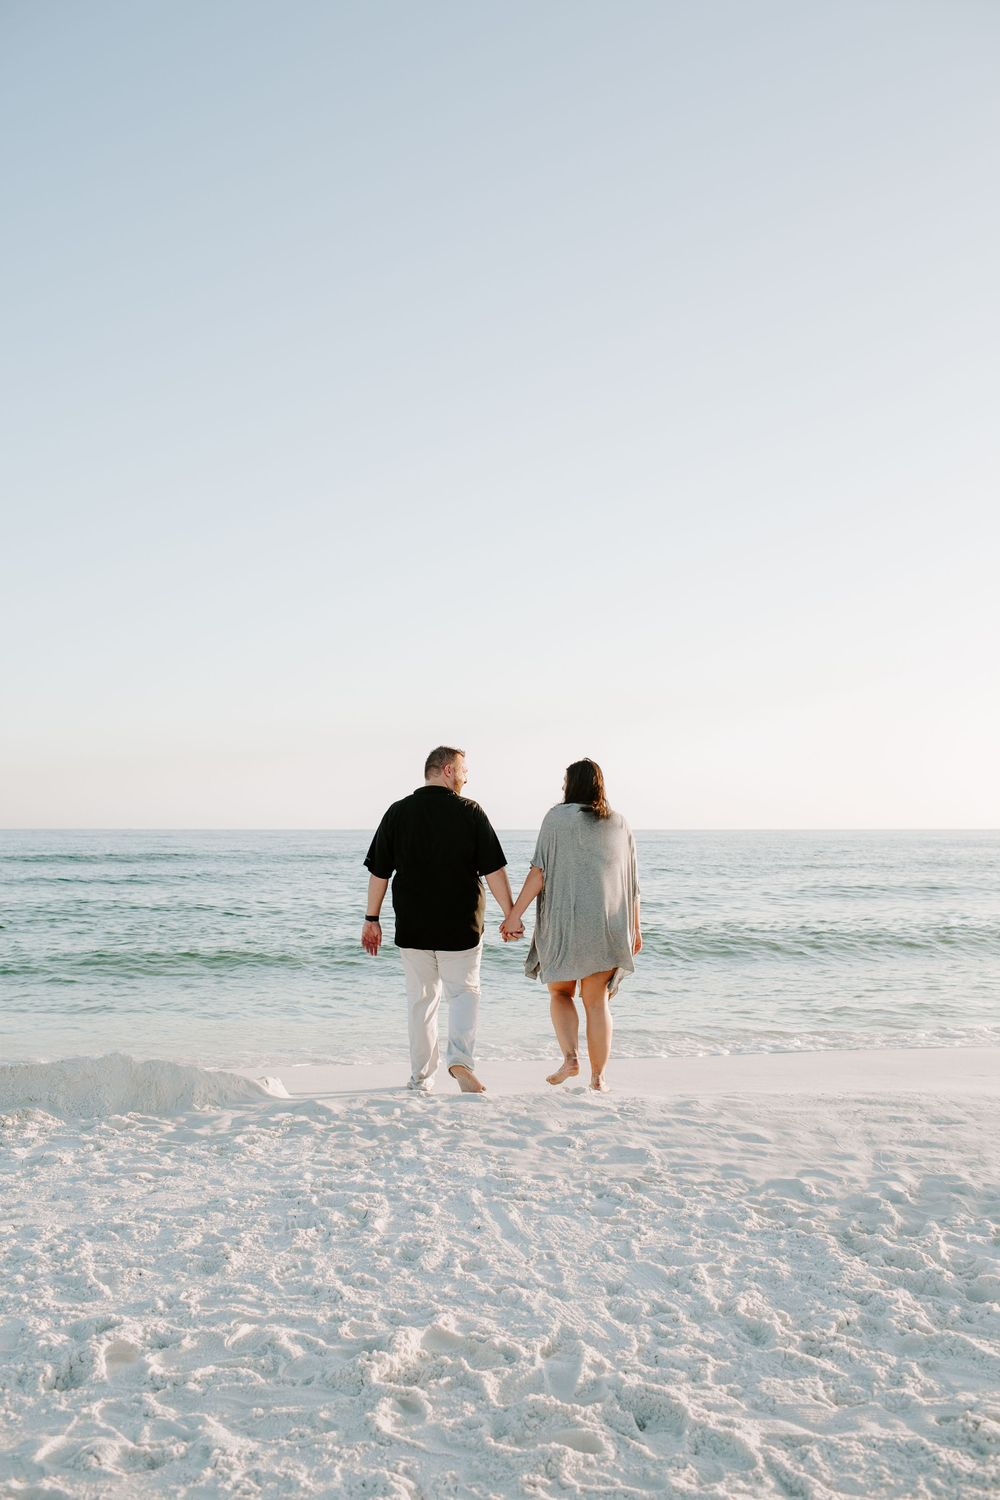 men and woman holding hands walking towards the ocean during their beach photoshoot